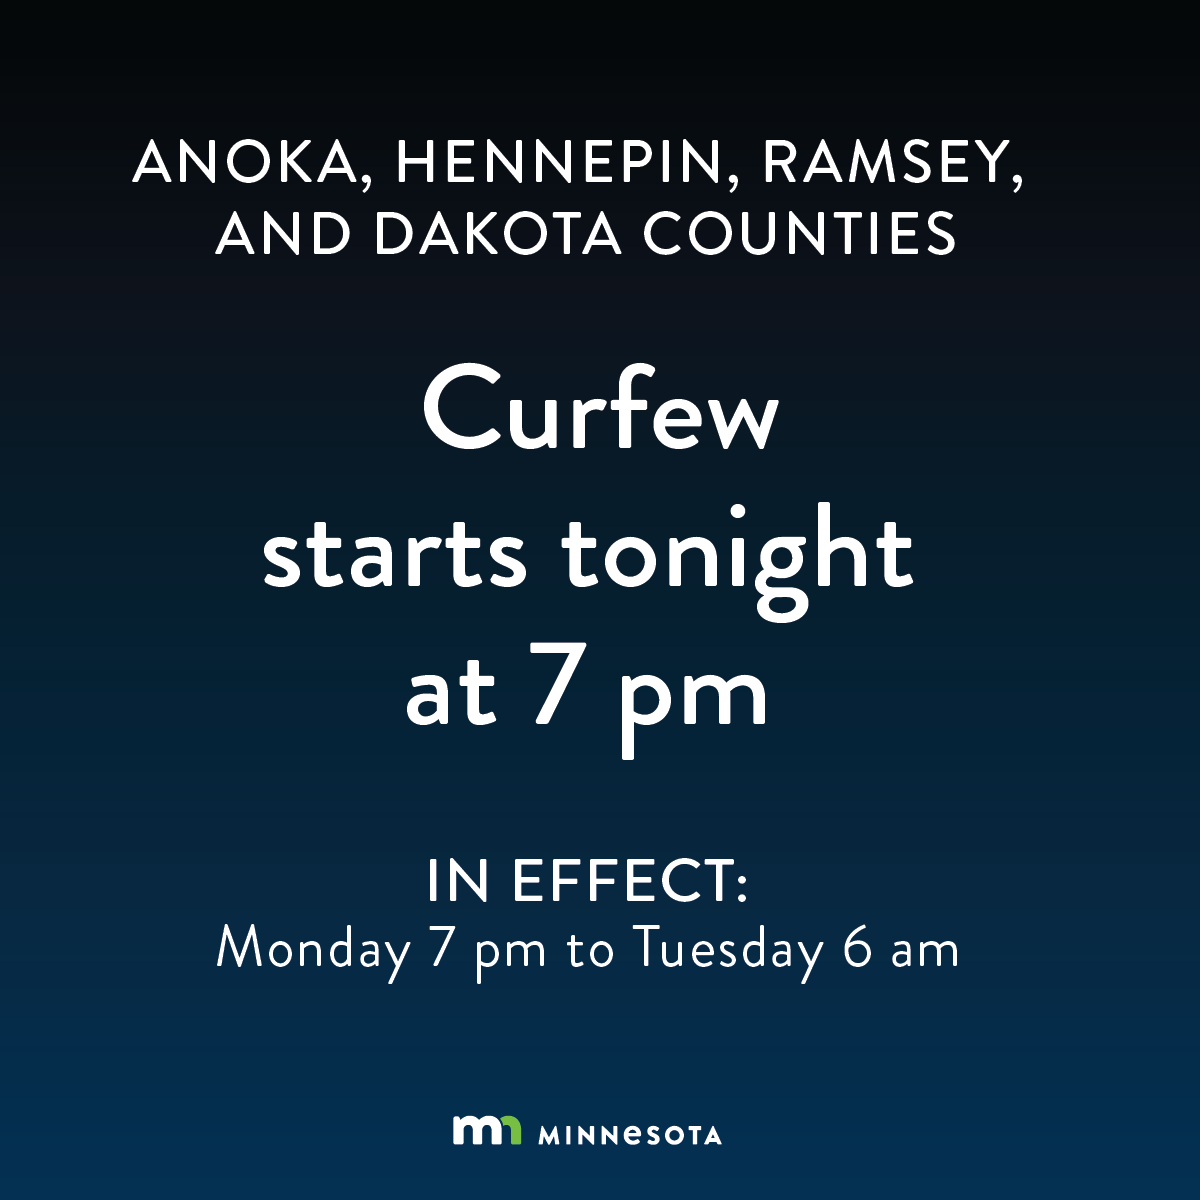 A curfew will be in place at 7 p.m. for Anoka, Hennepin, Ramsey, and Dakota counties. Exceptions for first responders, media, people going back and forth to work, seeking emergency care or fleeing danger, traveling to or from religious services, and experiencing homelessness.